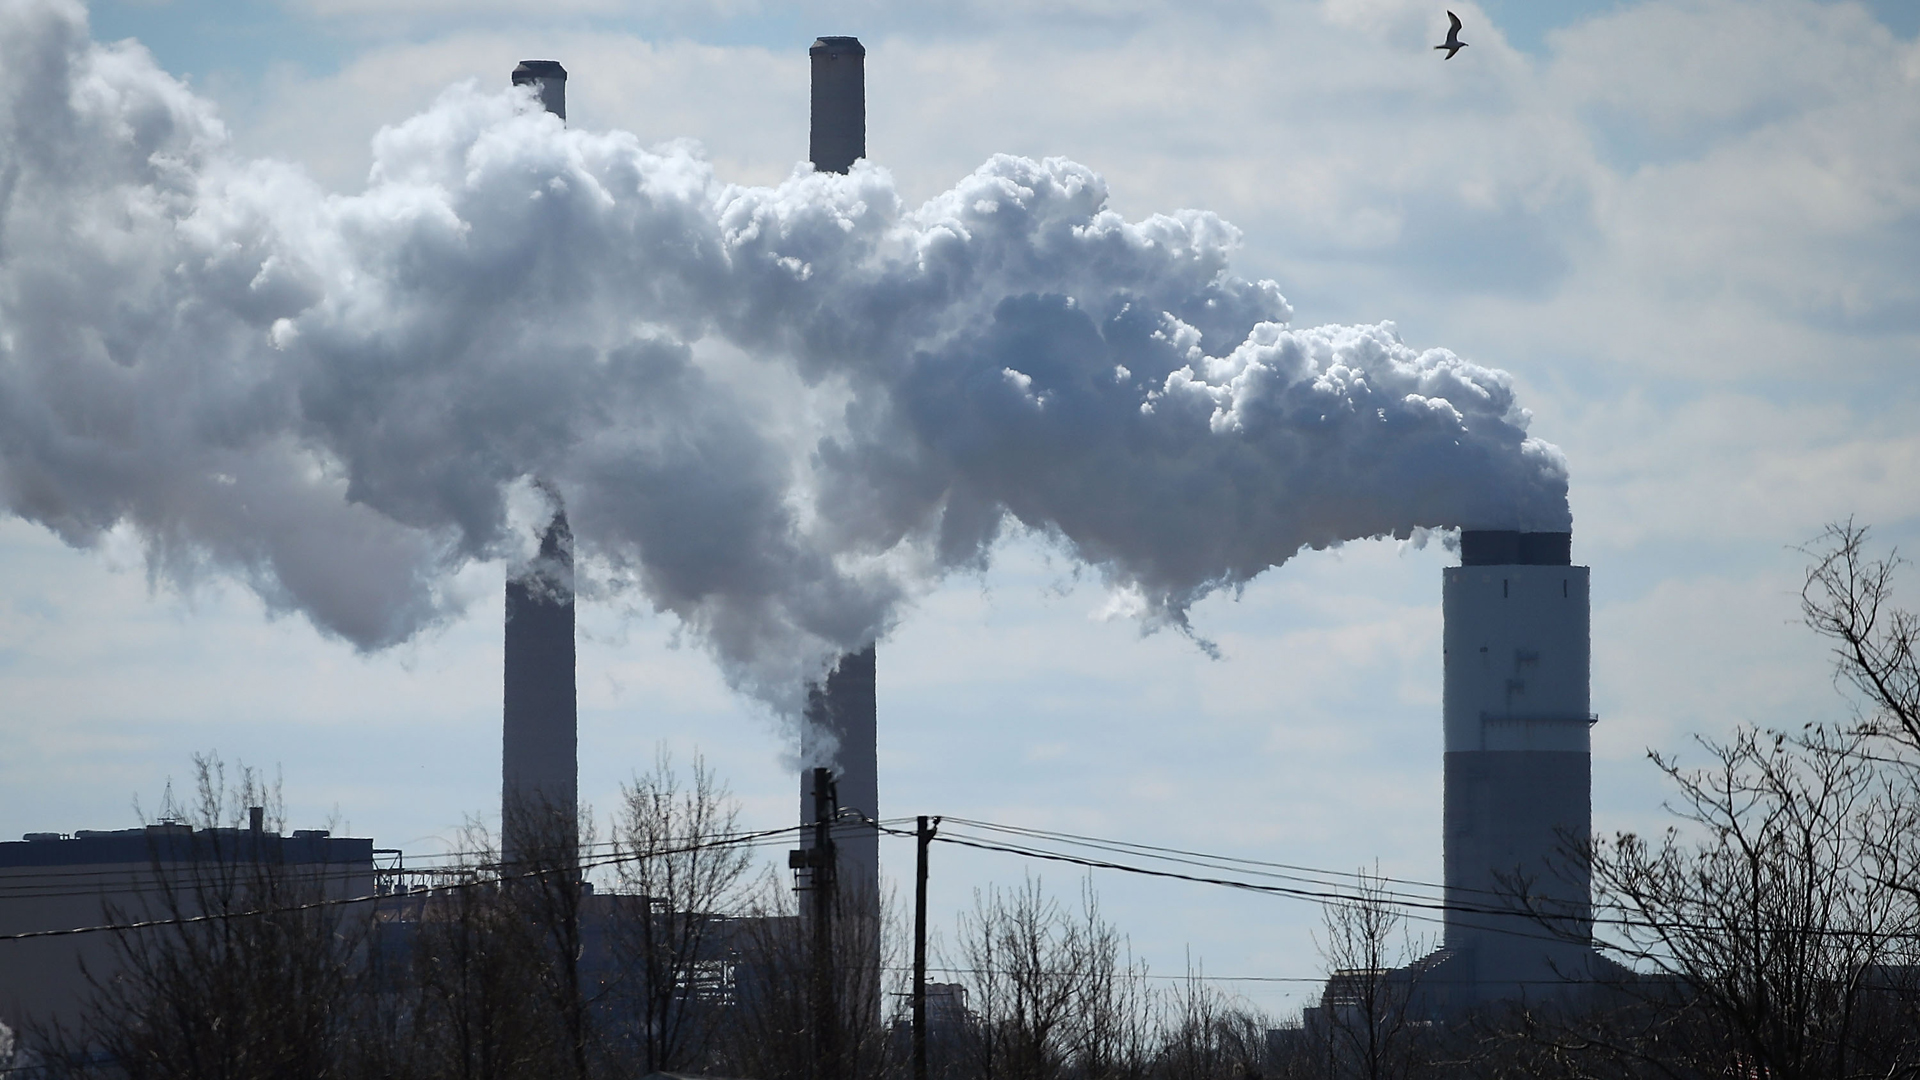 Emissions spew from a large stack at the coal fired Brandon Shores Power Plant, on March 9, 2018 in Baltimore, Maryland.(Credit: Mark Wilson/Getty Images)